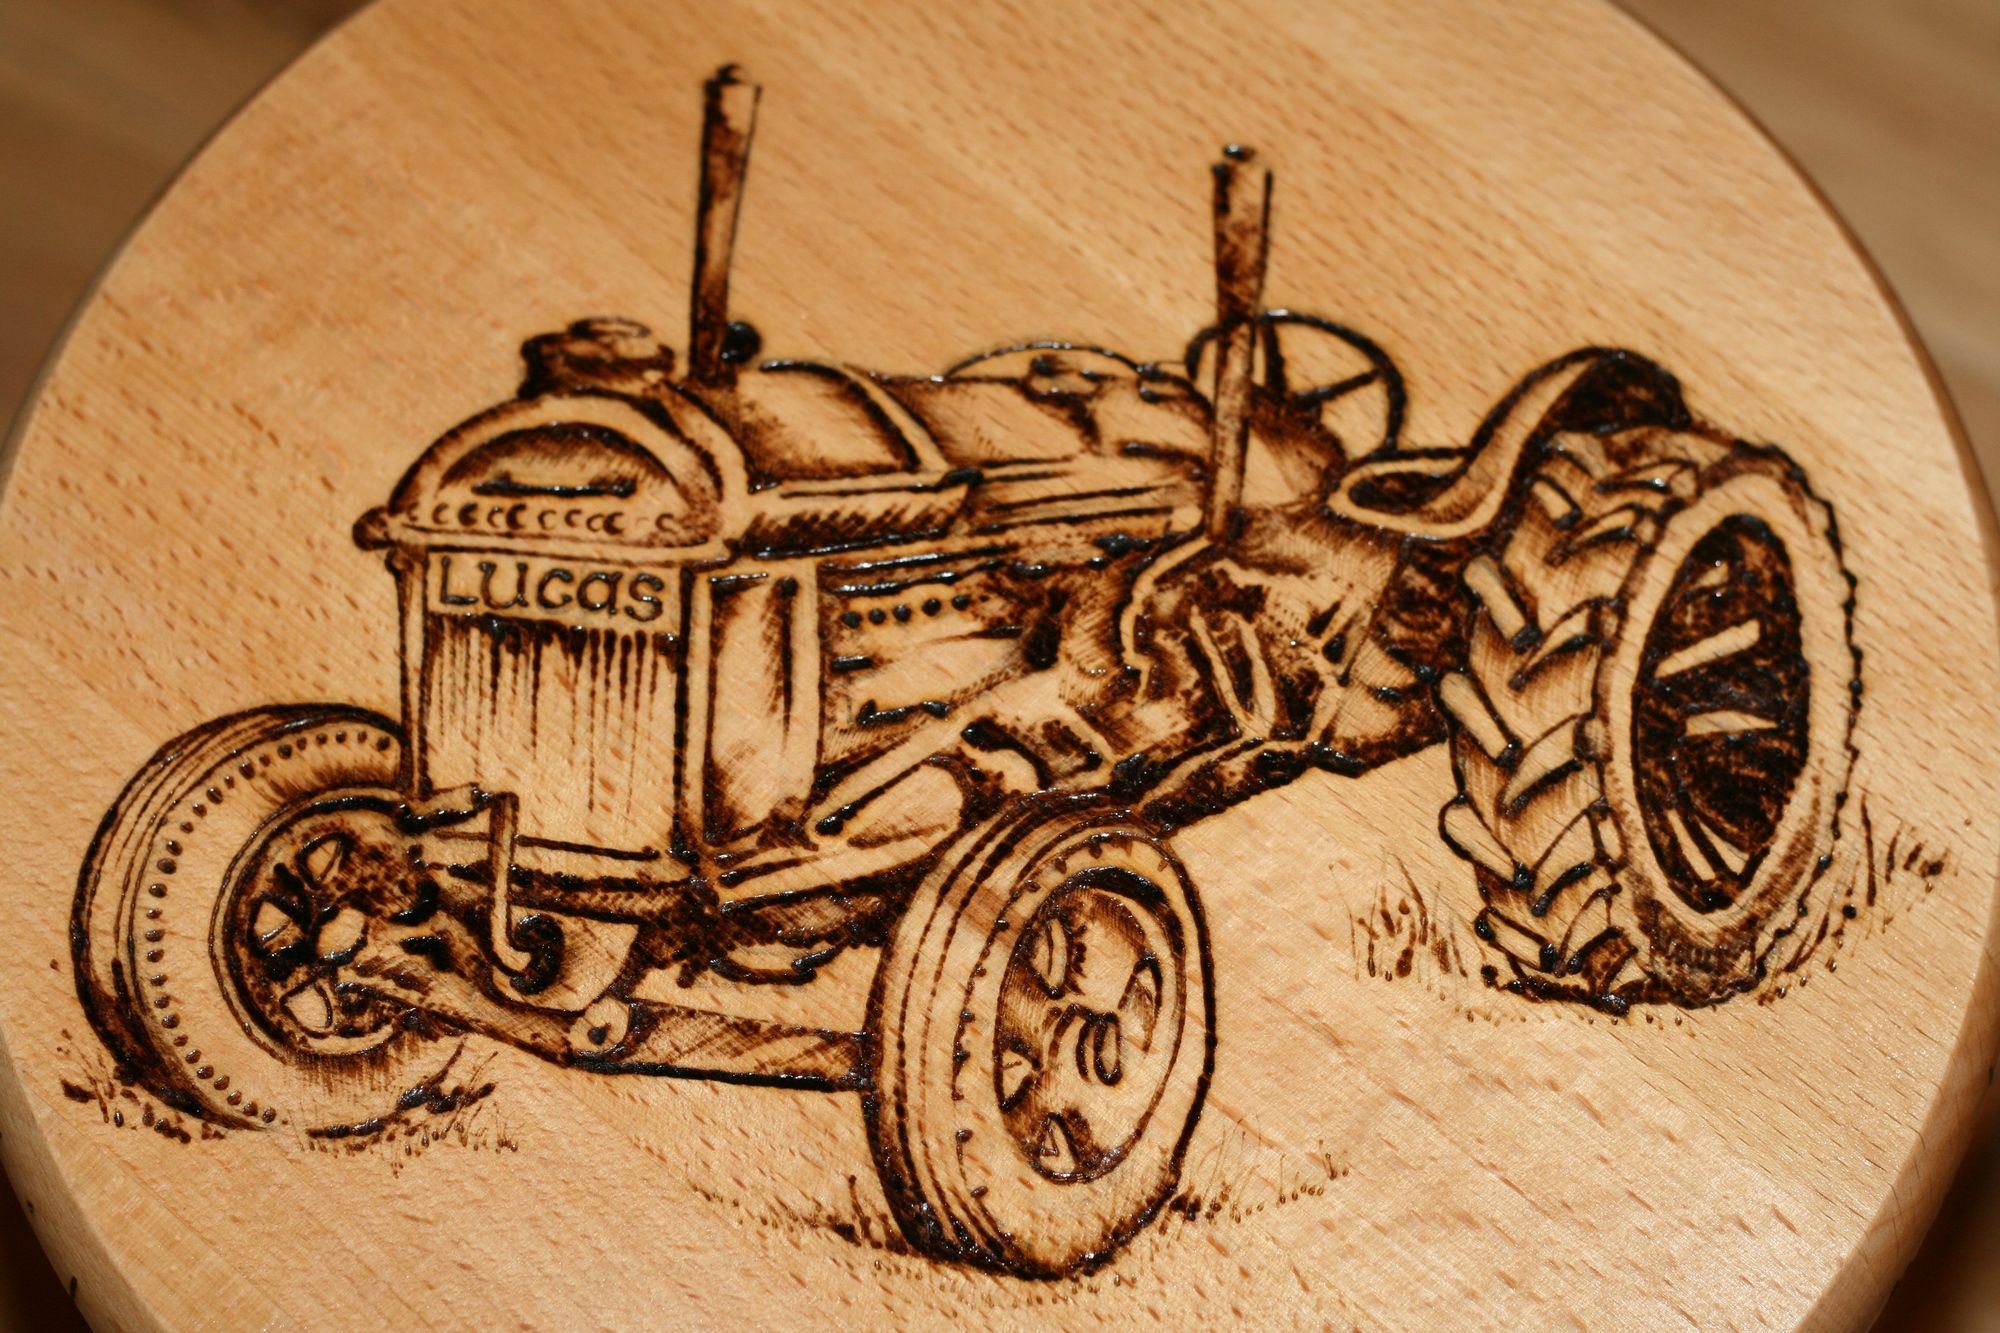 Decorated With Pyrography Art Of Decorating By Burning